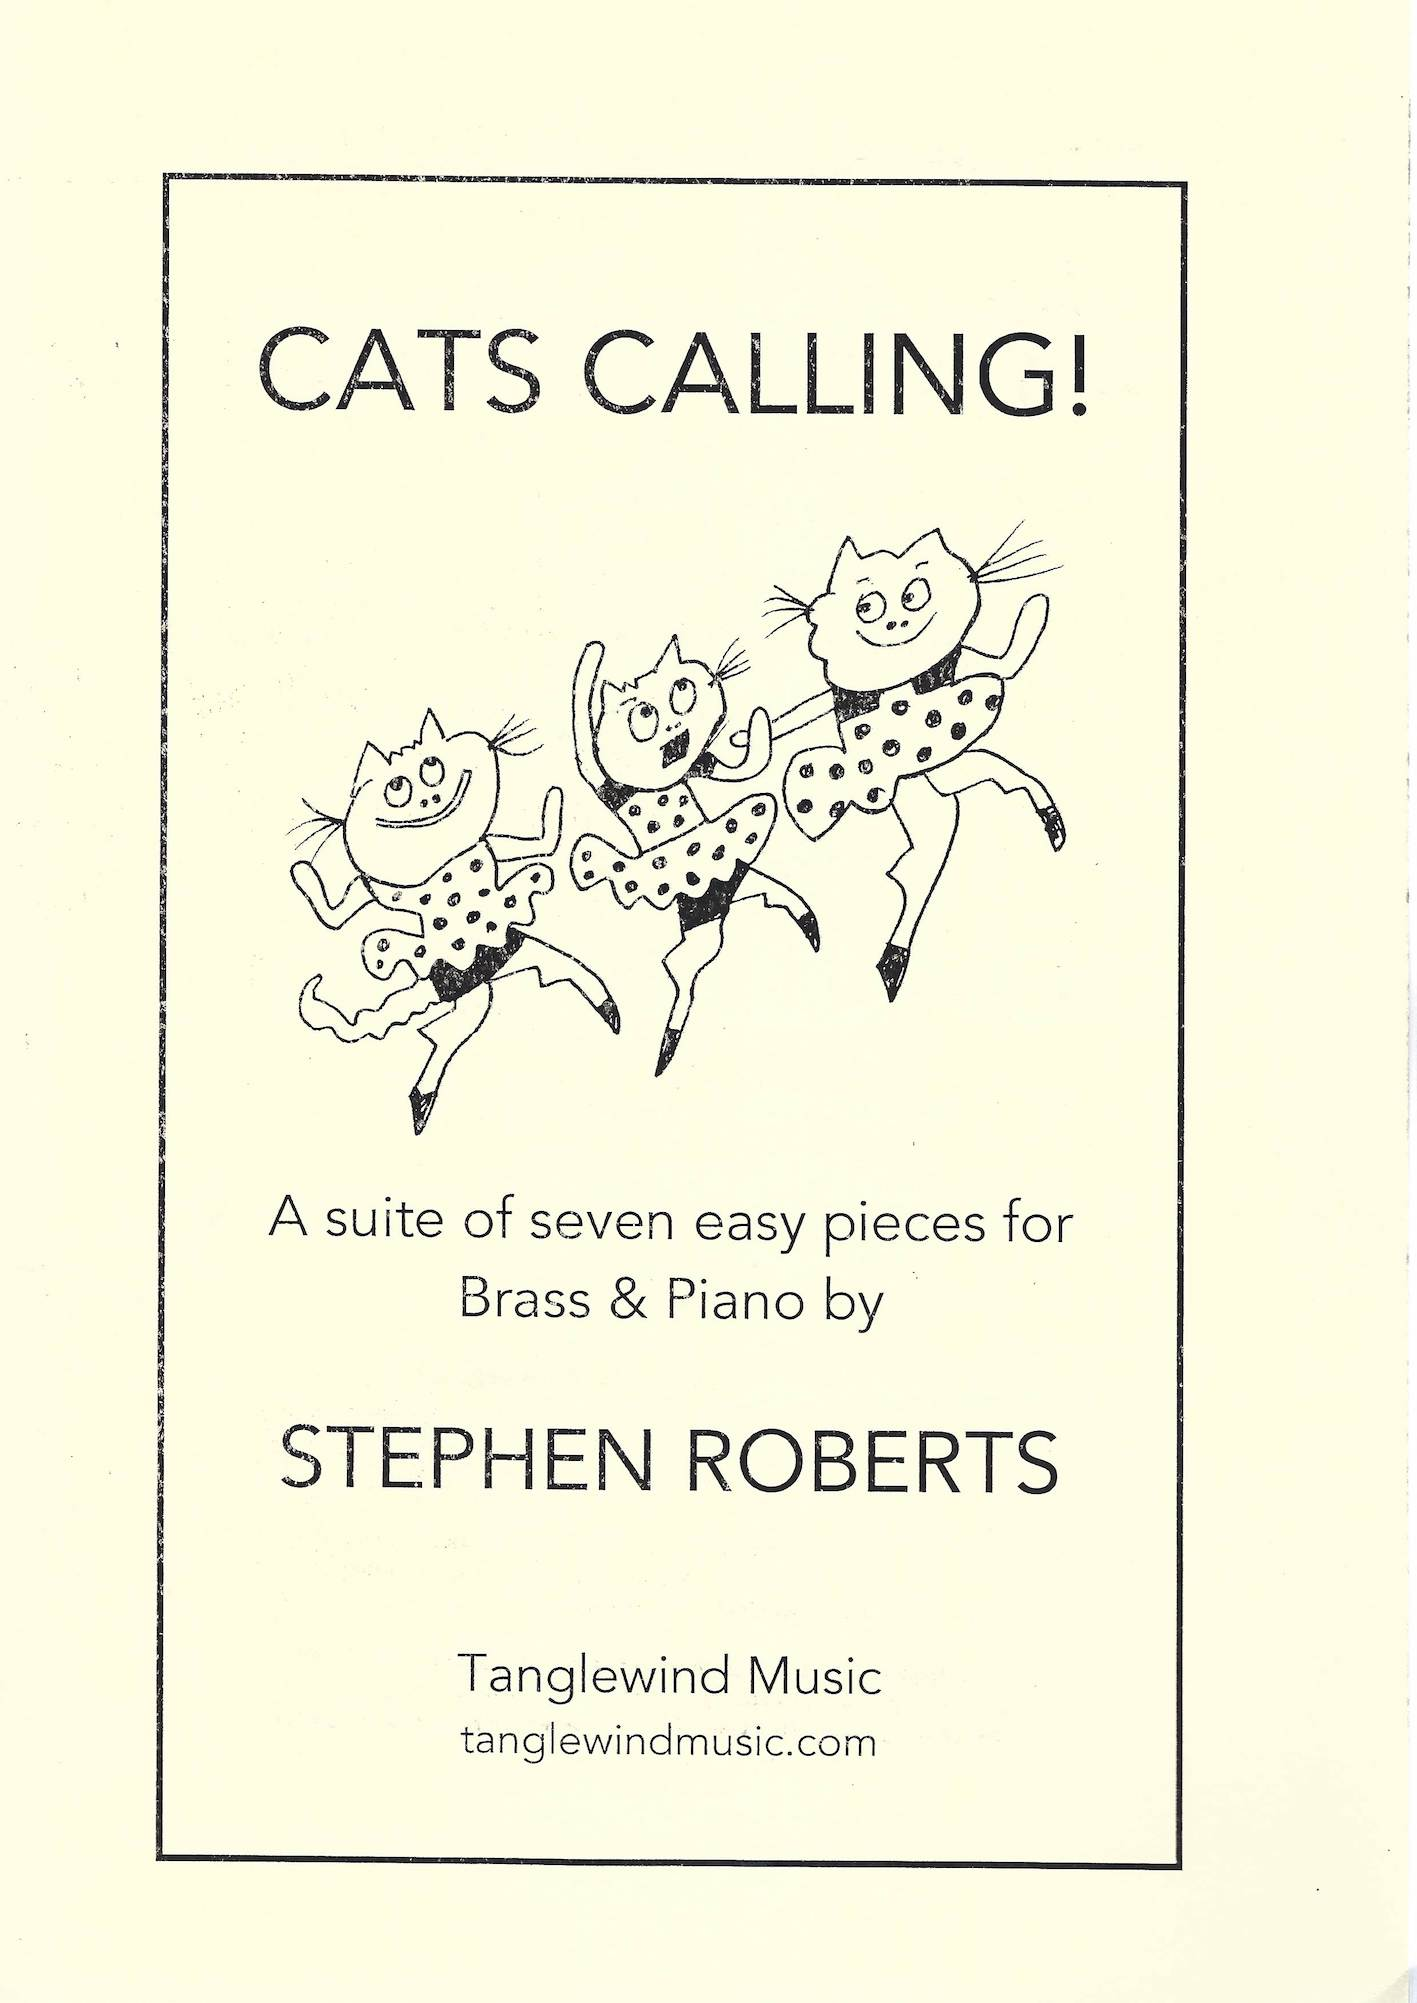 Cats Calling (A Suite of Seven Easy Pieces for Brass and Piano)- Stephen Roberts